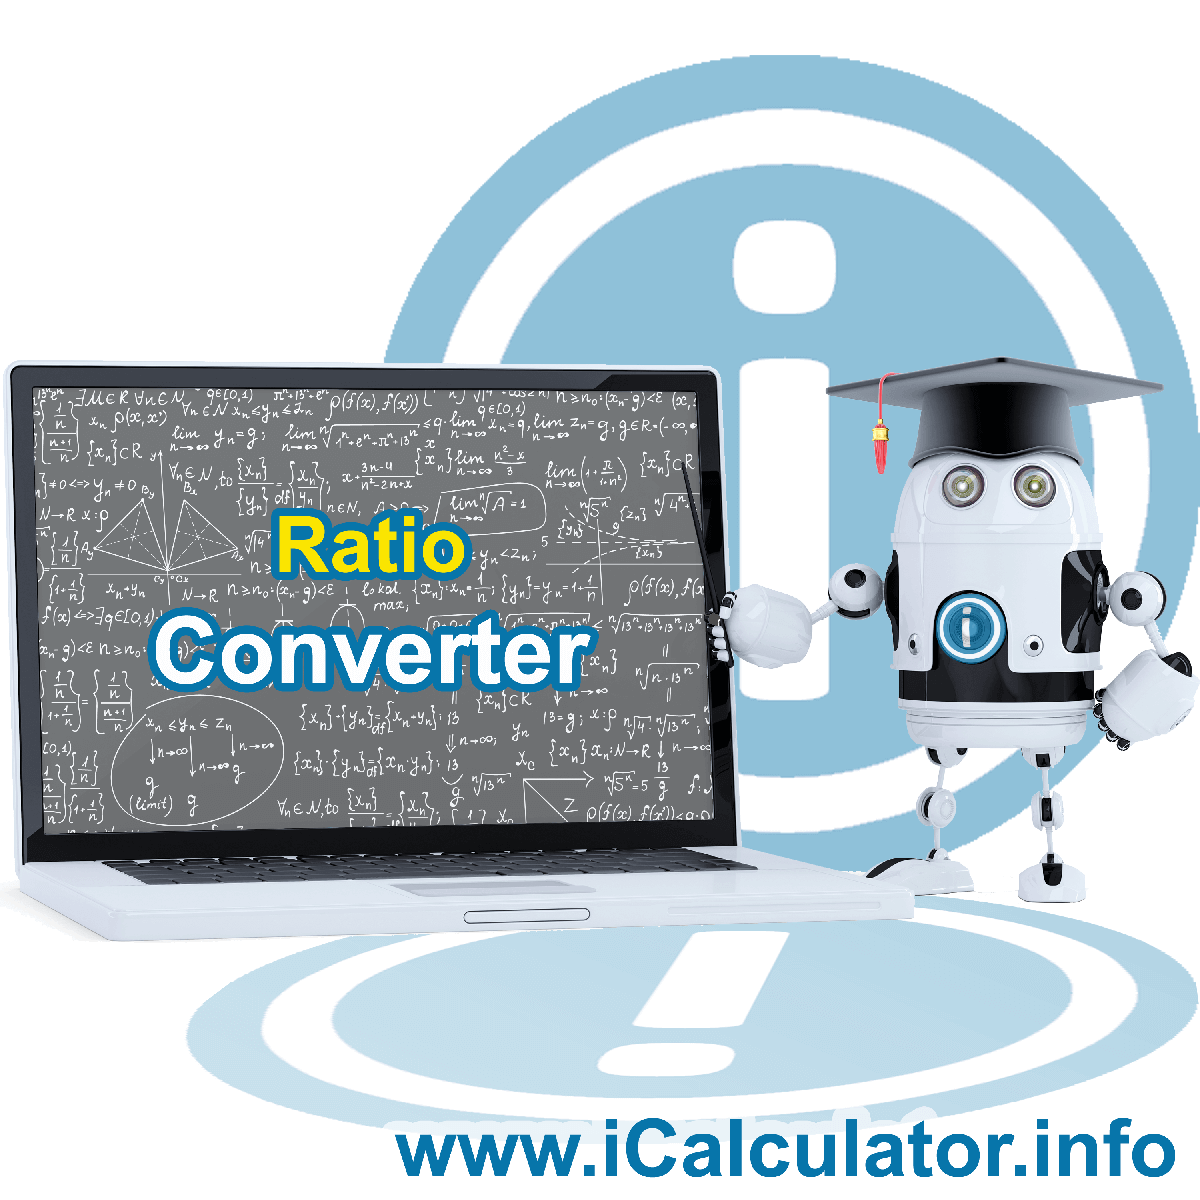 Ratio Converter. This image shows the properties and ratio converter formula for the Ratio Converter